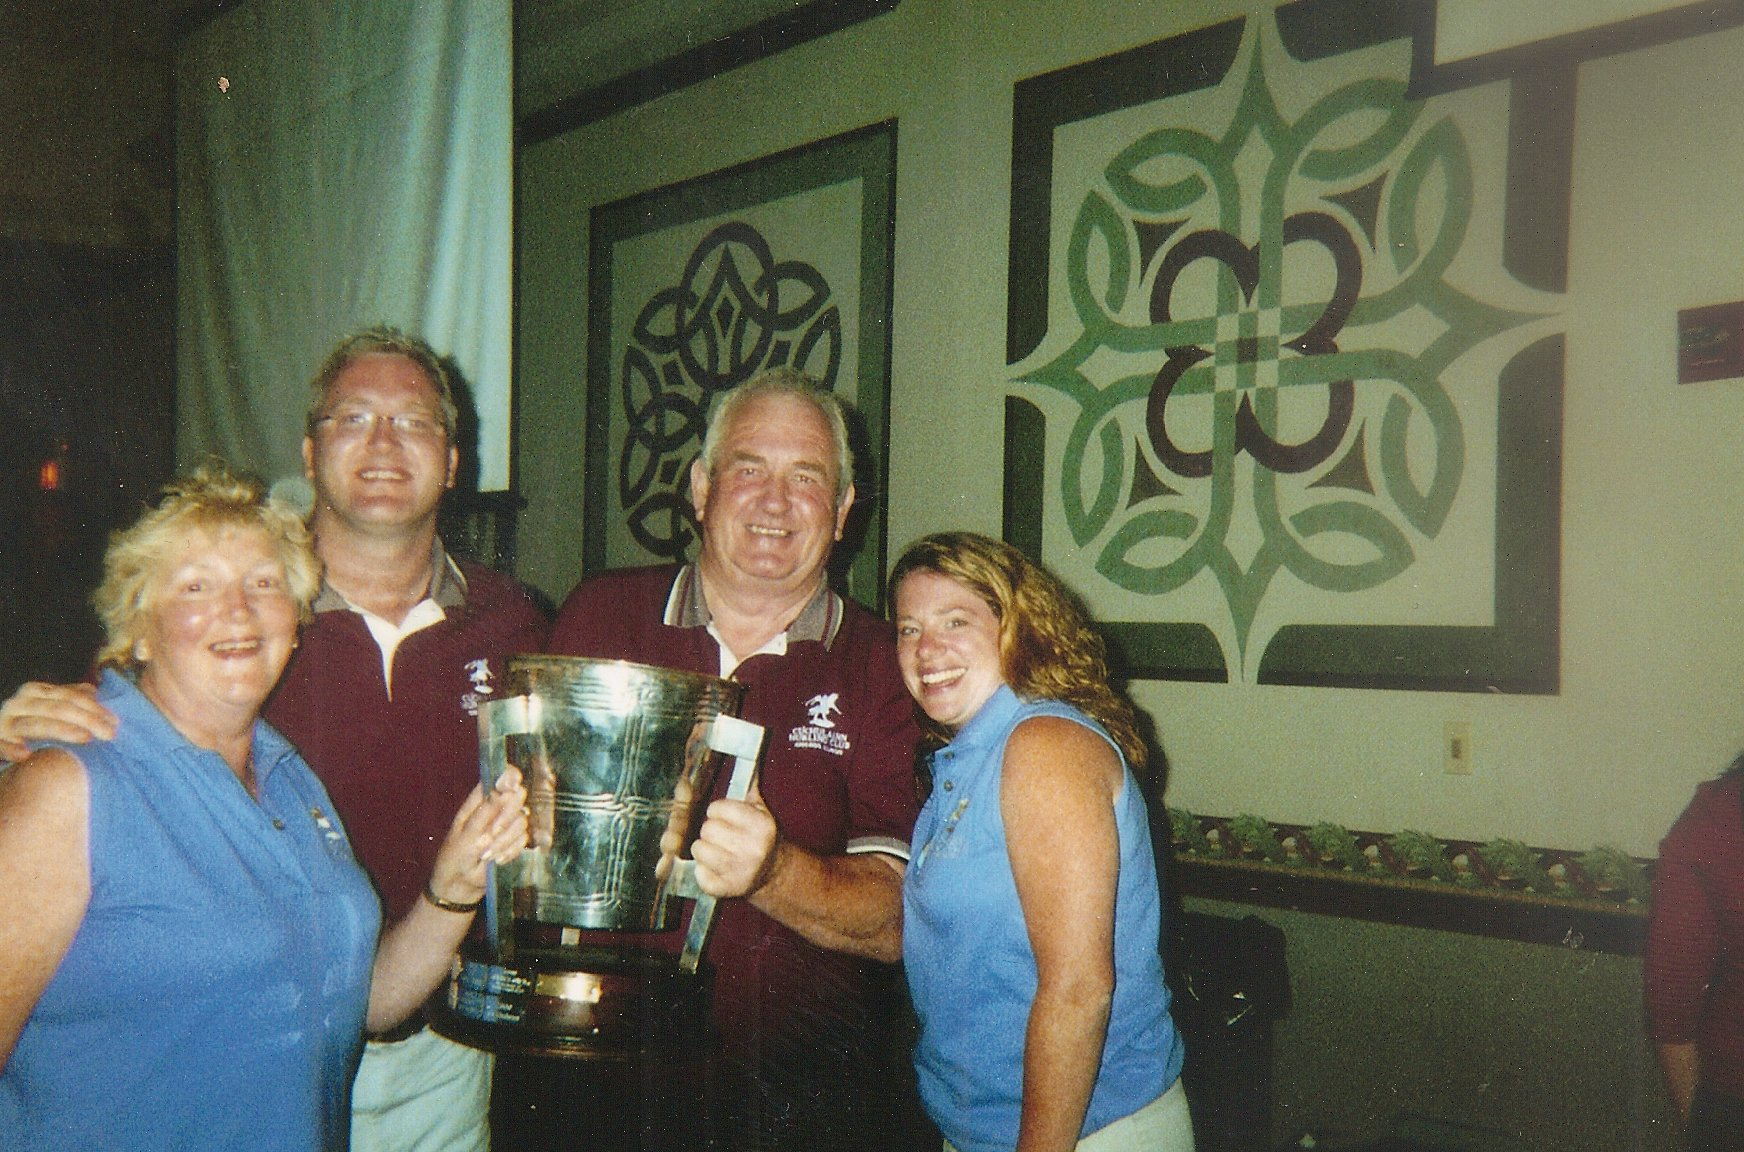 Colm with his mother Mary, father Jim and wife Michelle after the 2002 Chicago fina